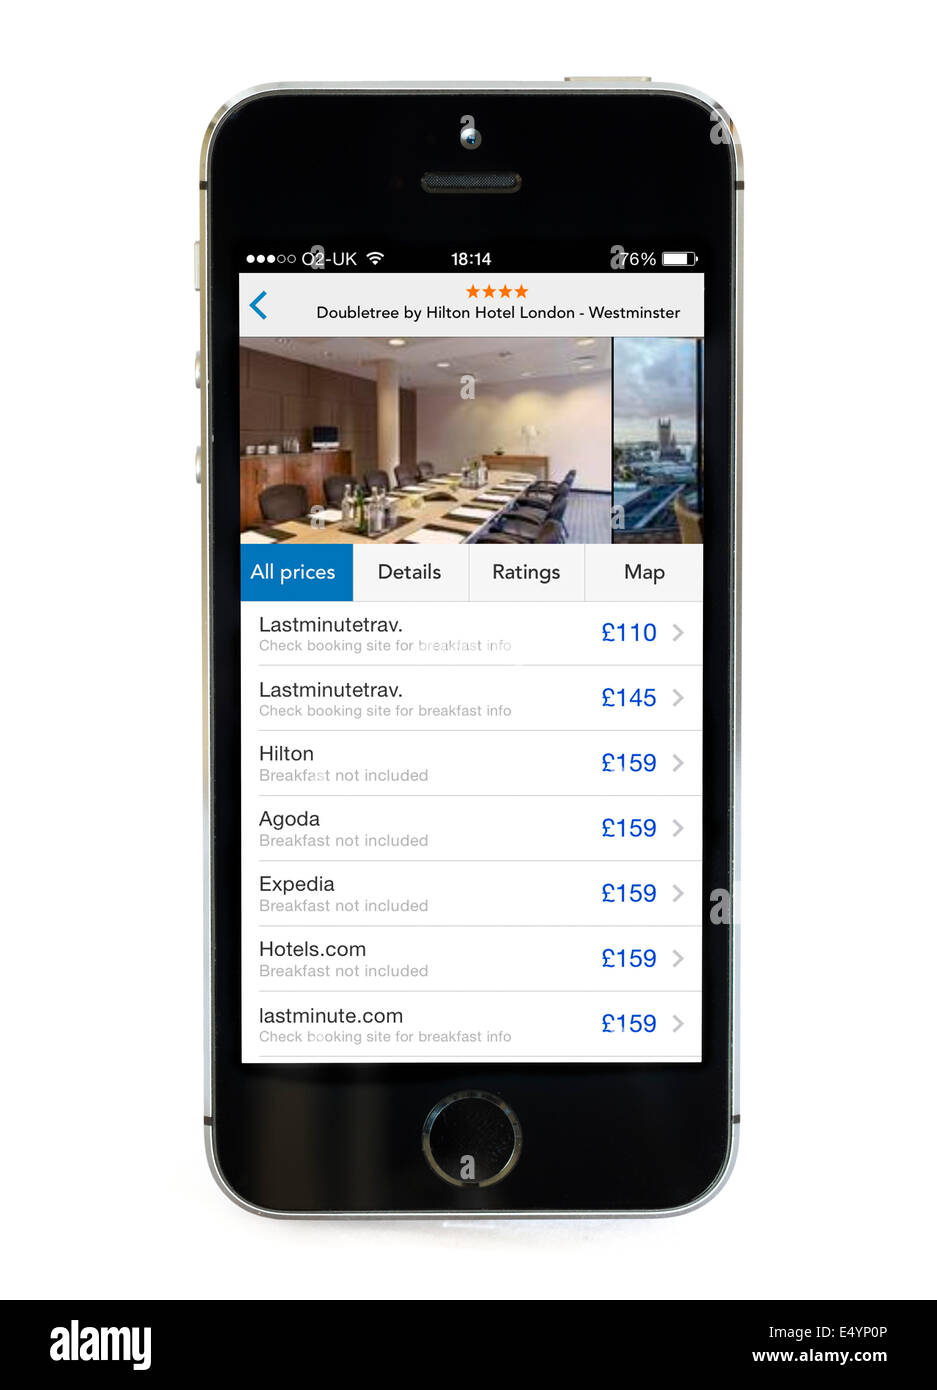 Trivago App The Hotel Price Comparison Tool On An Apple IPhone 5S